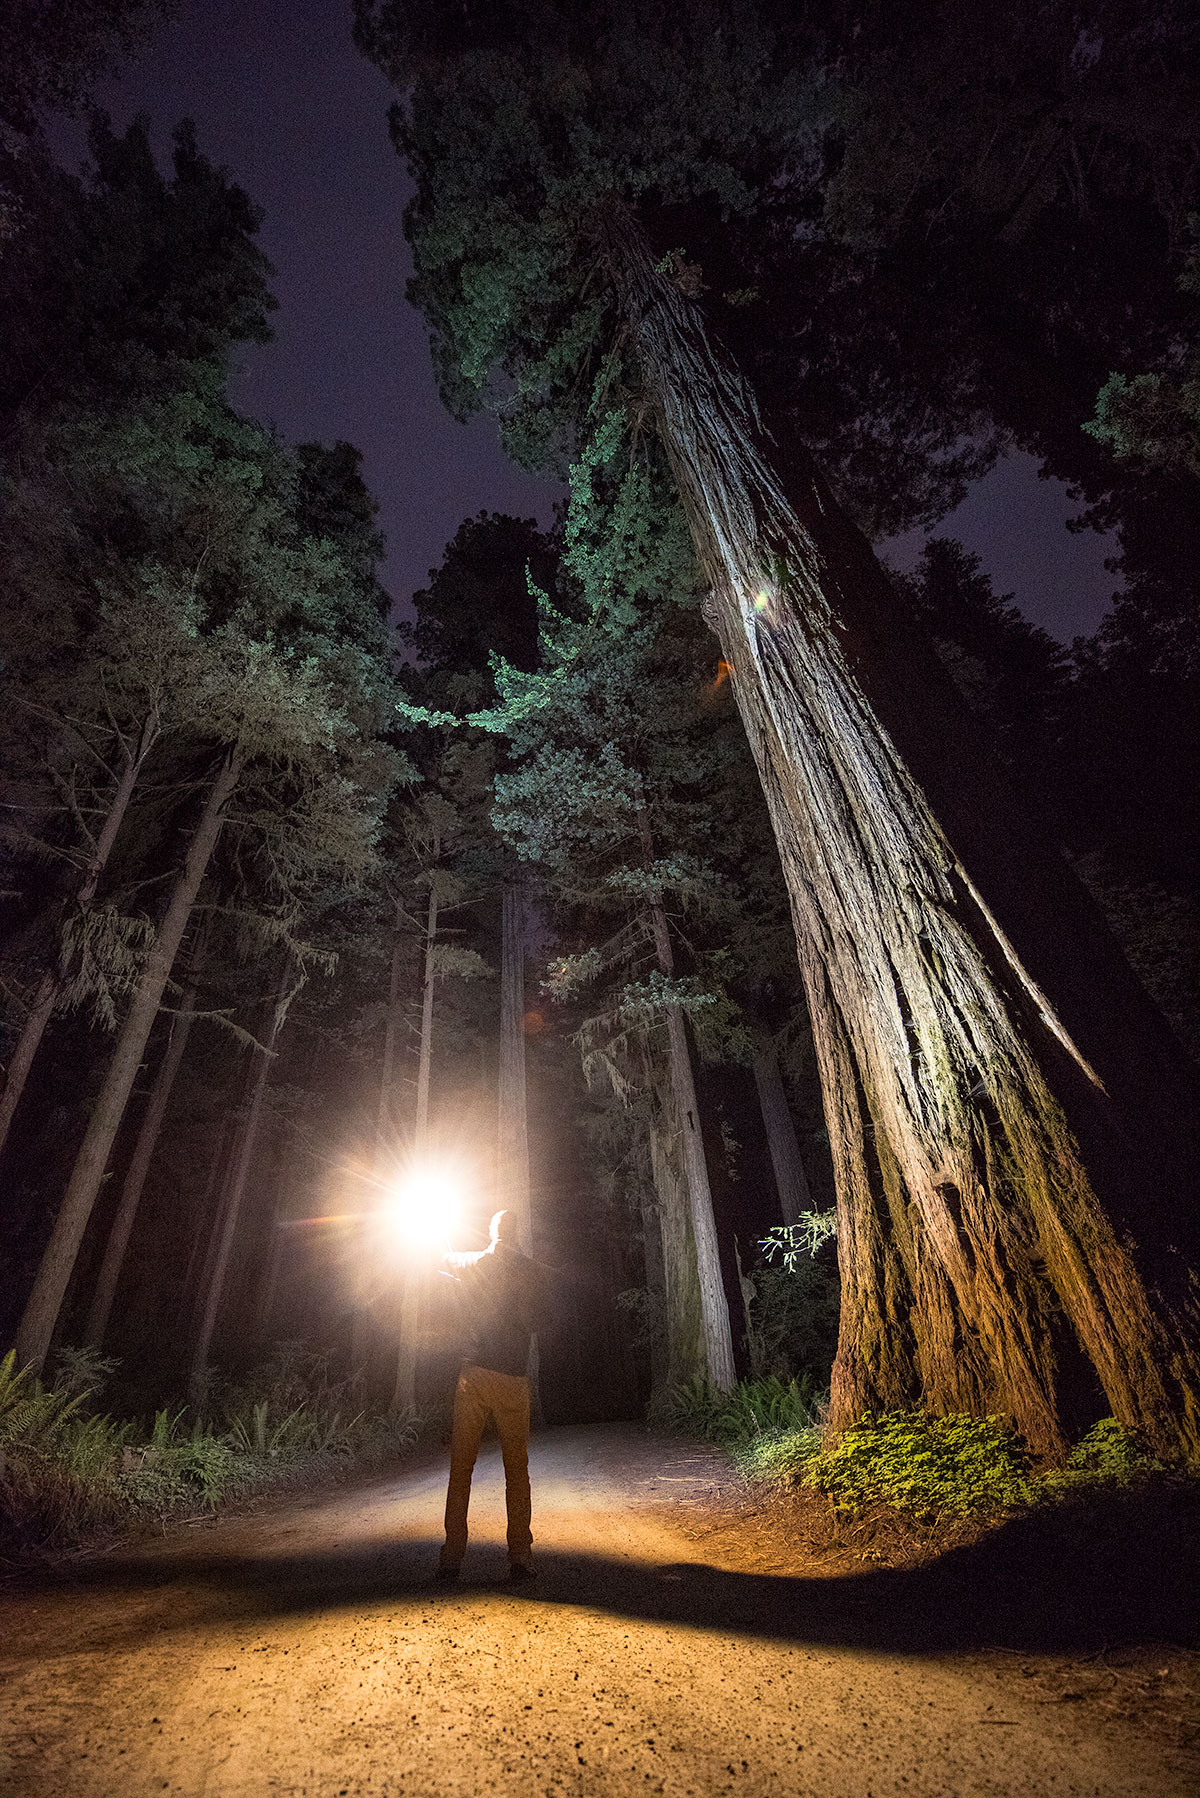 austin-trigg-redwood-national-state-park-Hunting-Sasquatch-night-forest-tall-trees.jpg